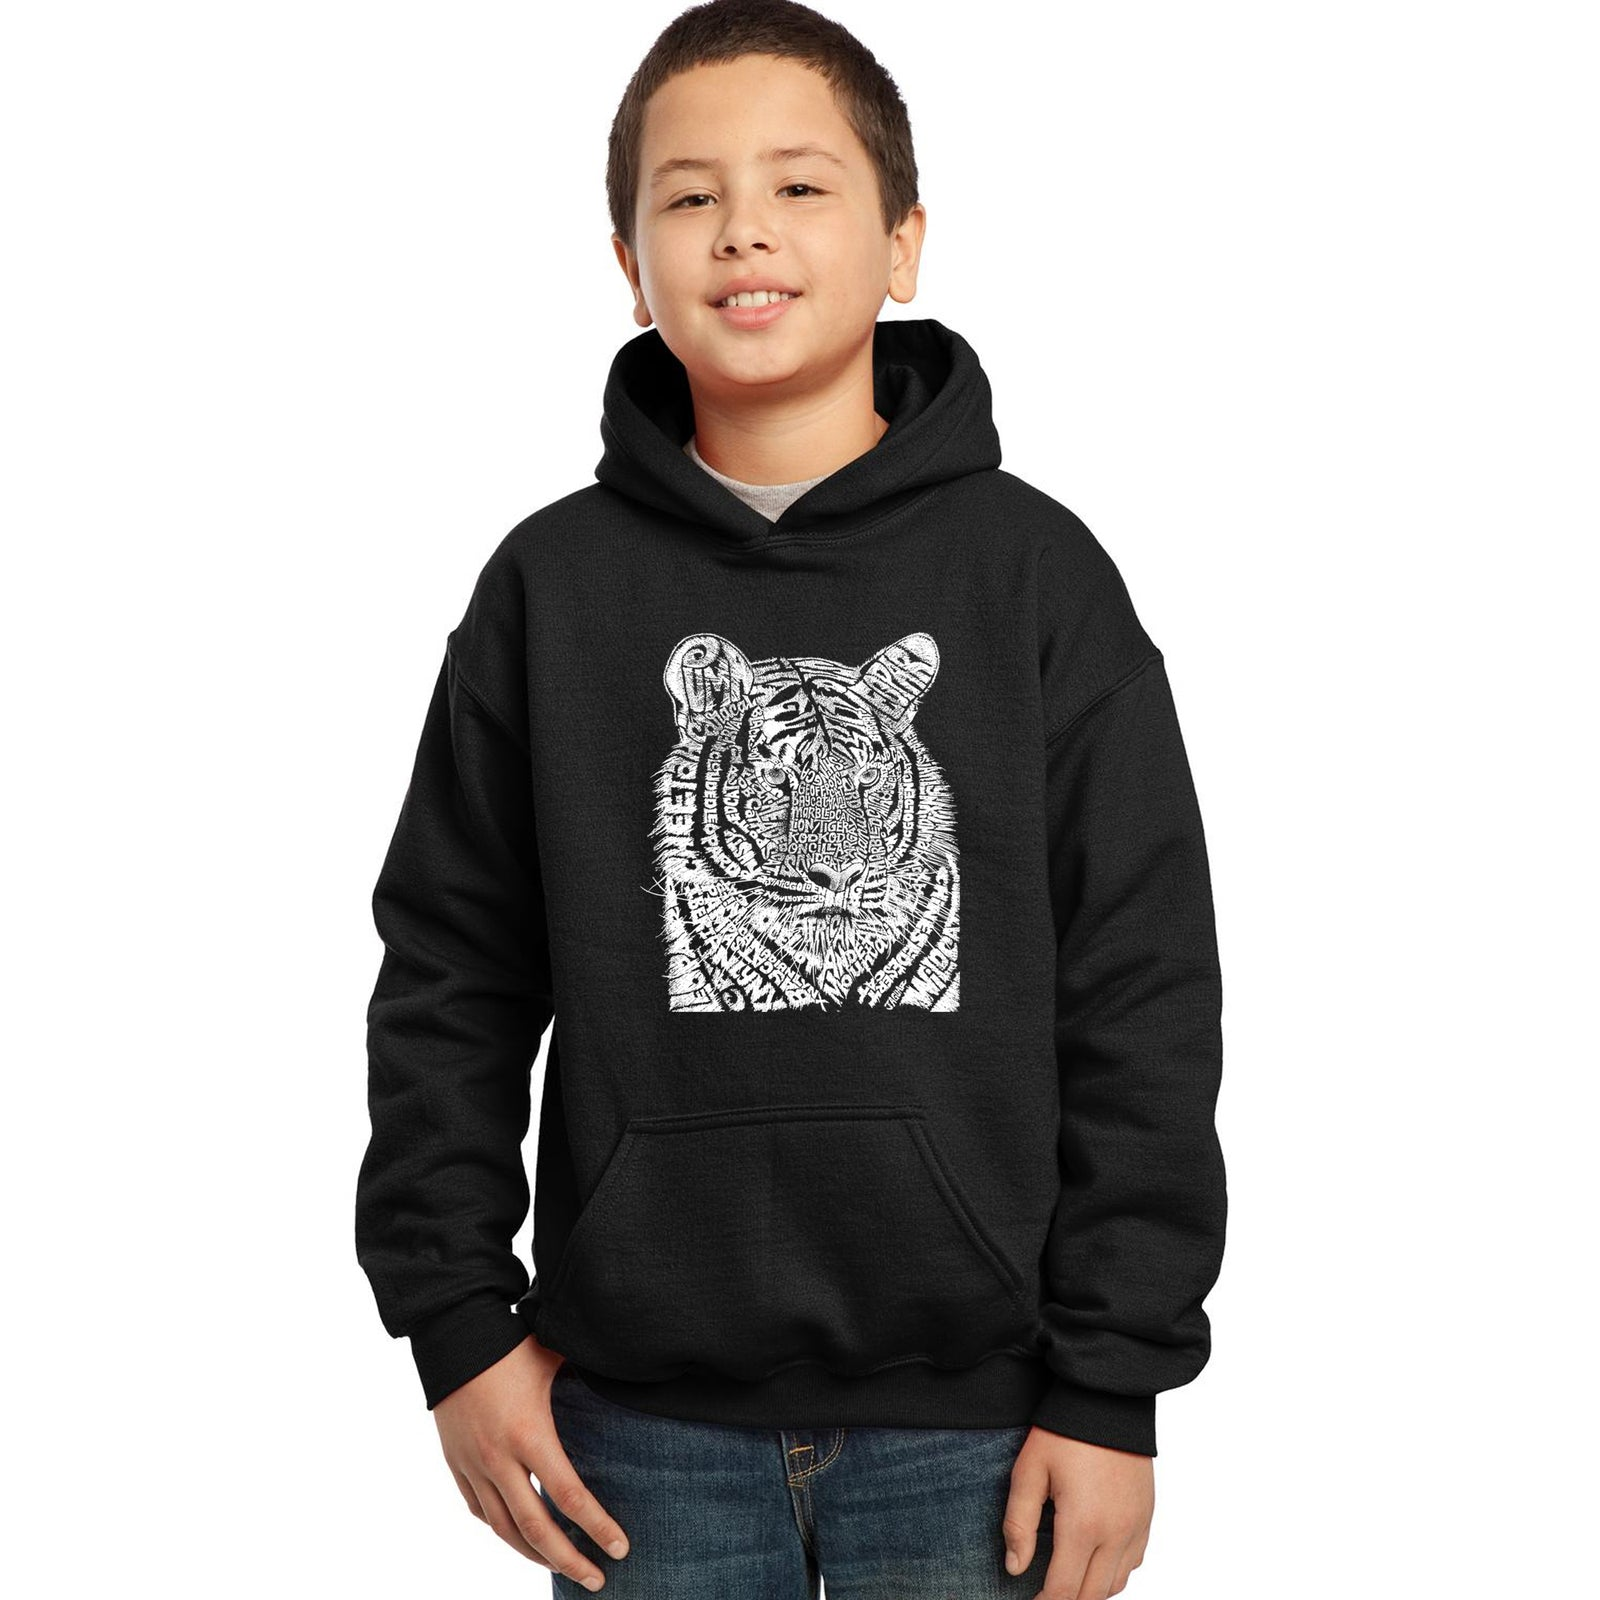 Boy's Word Art Hooded Sweatshirt - Big Cats